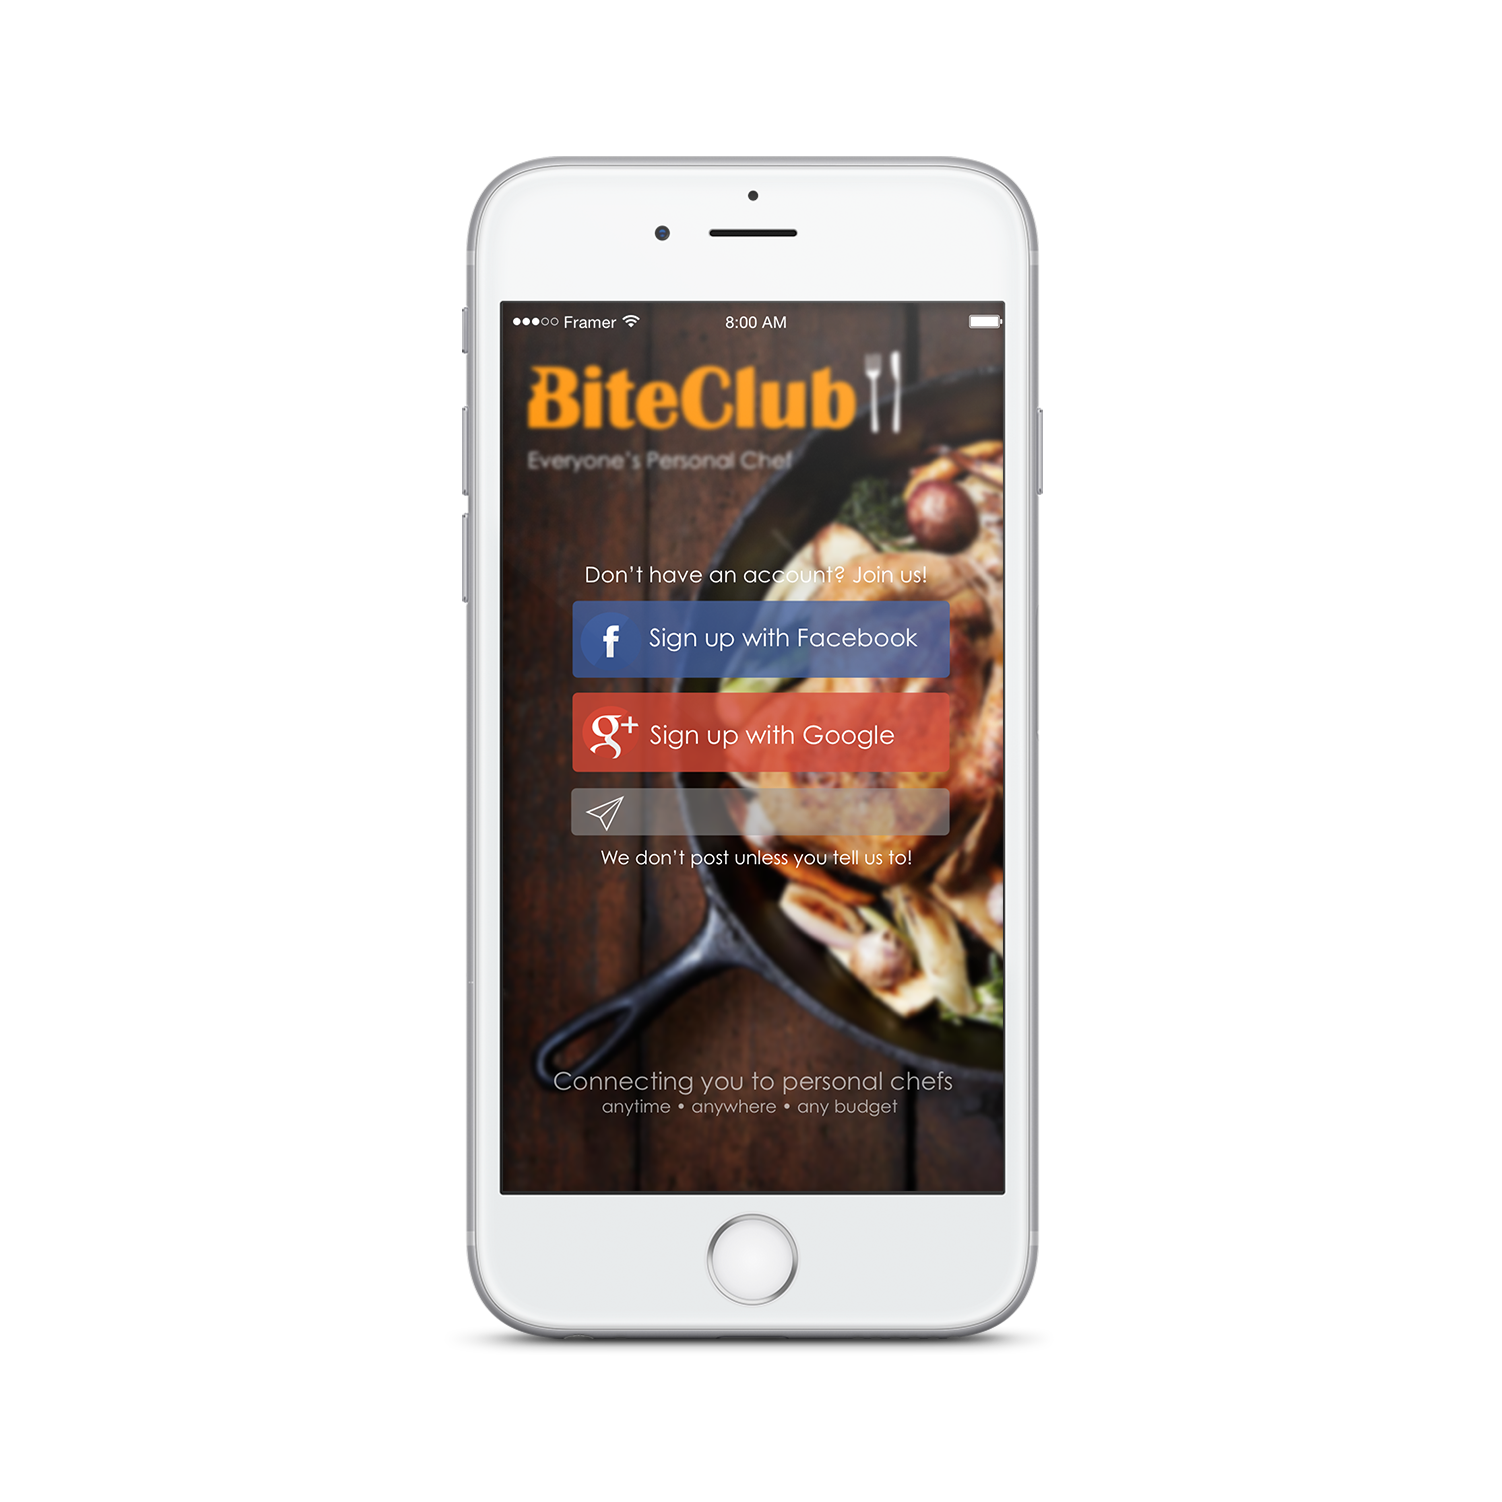 Biteclub Iphone Screen 2.png